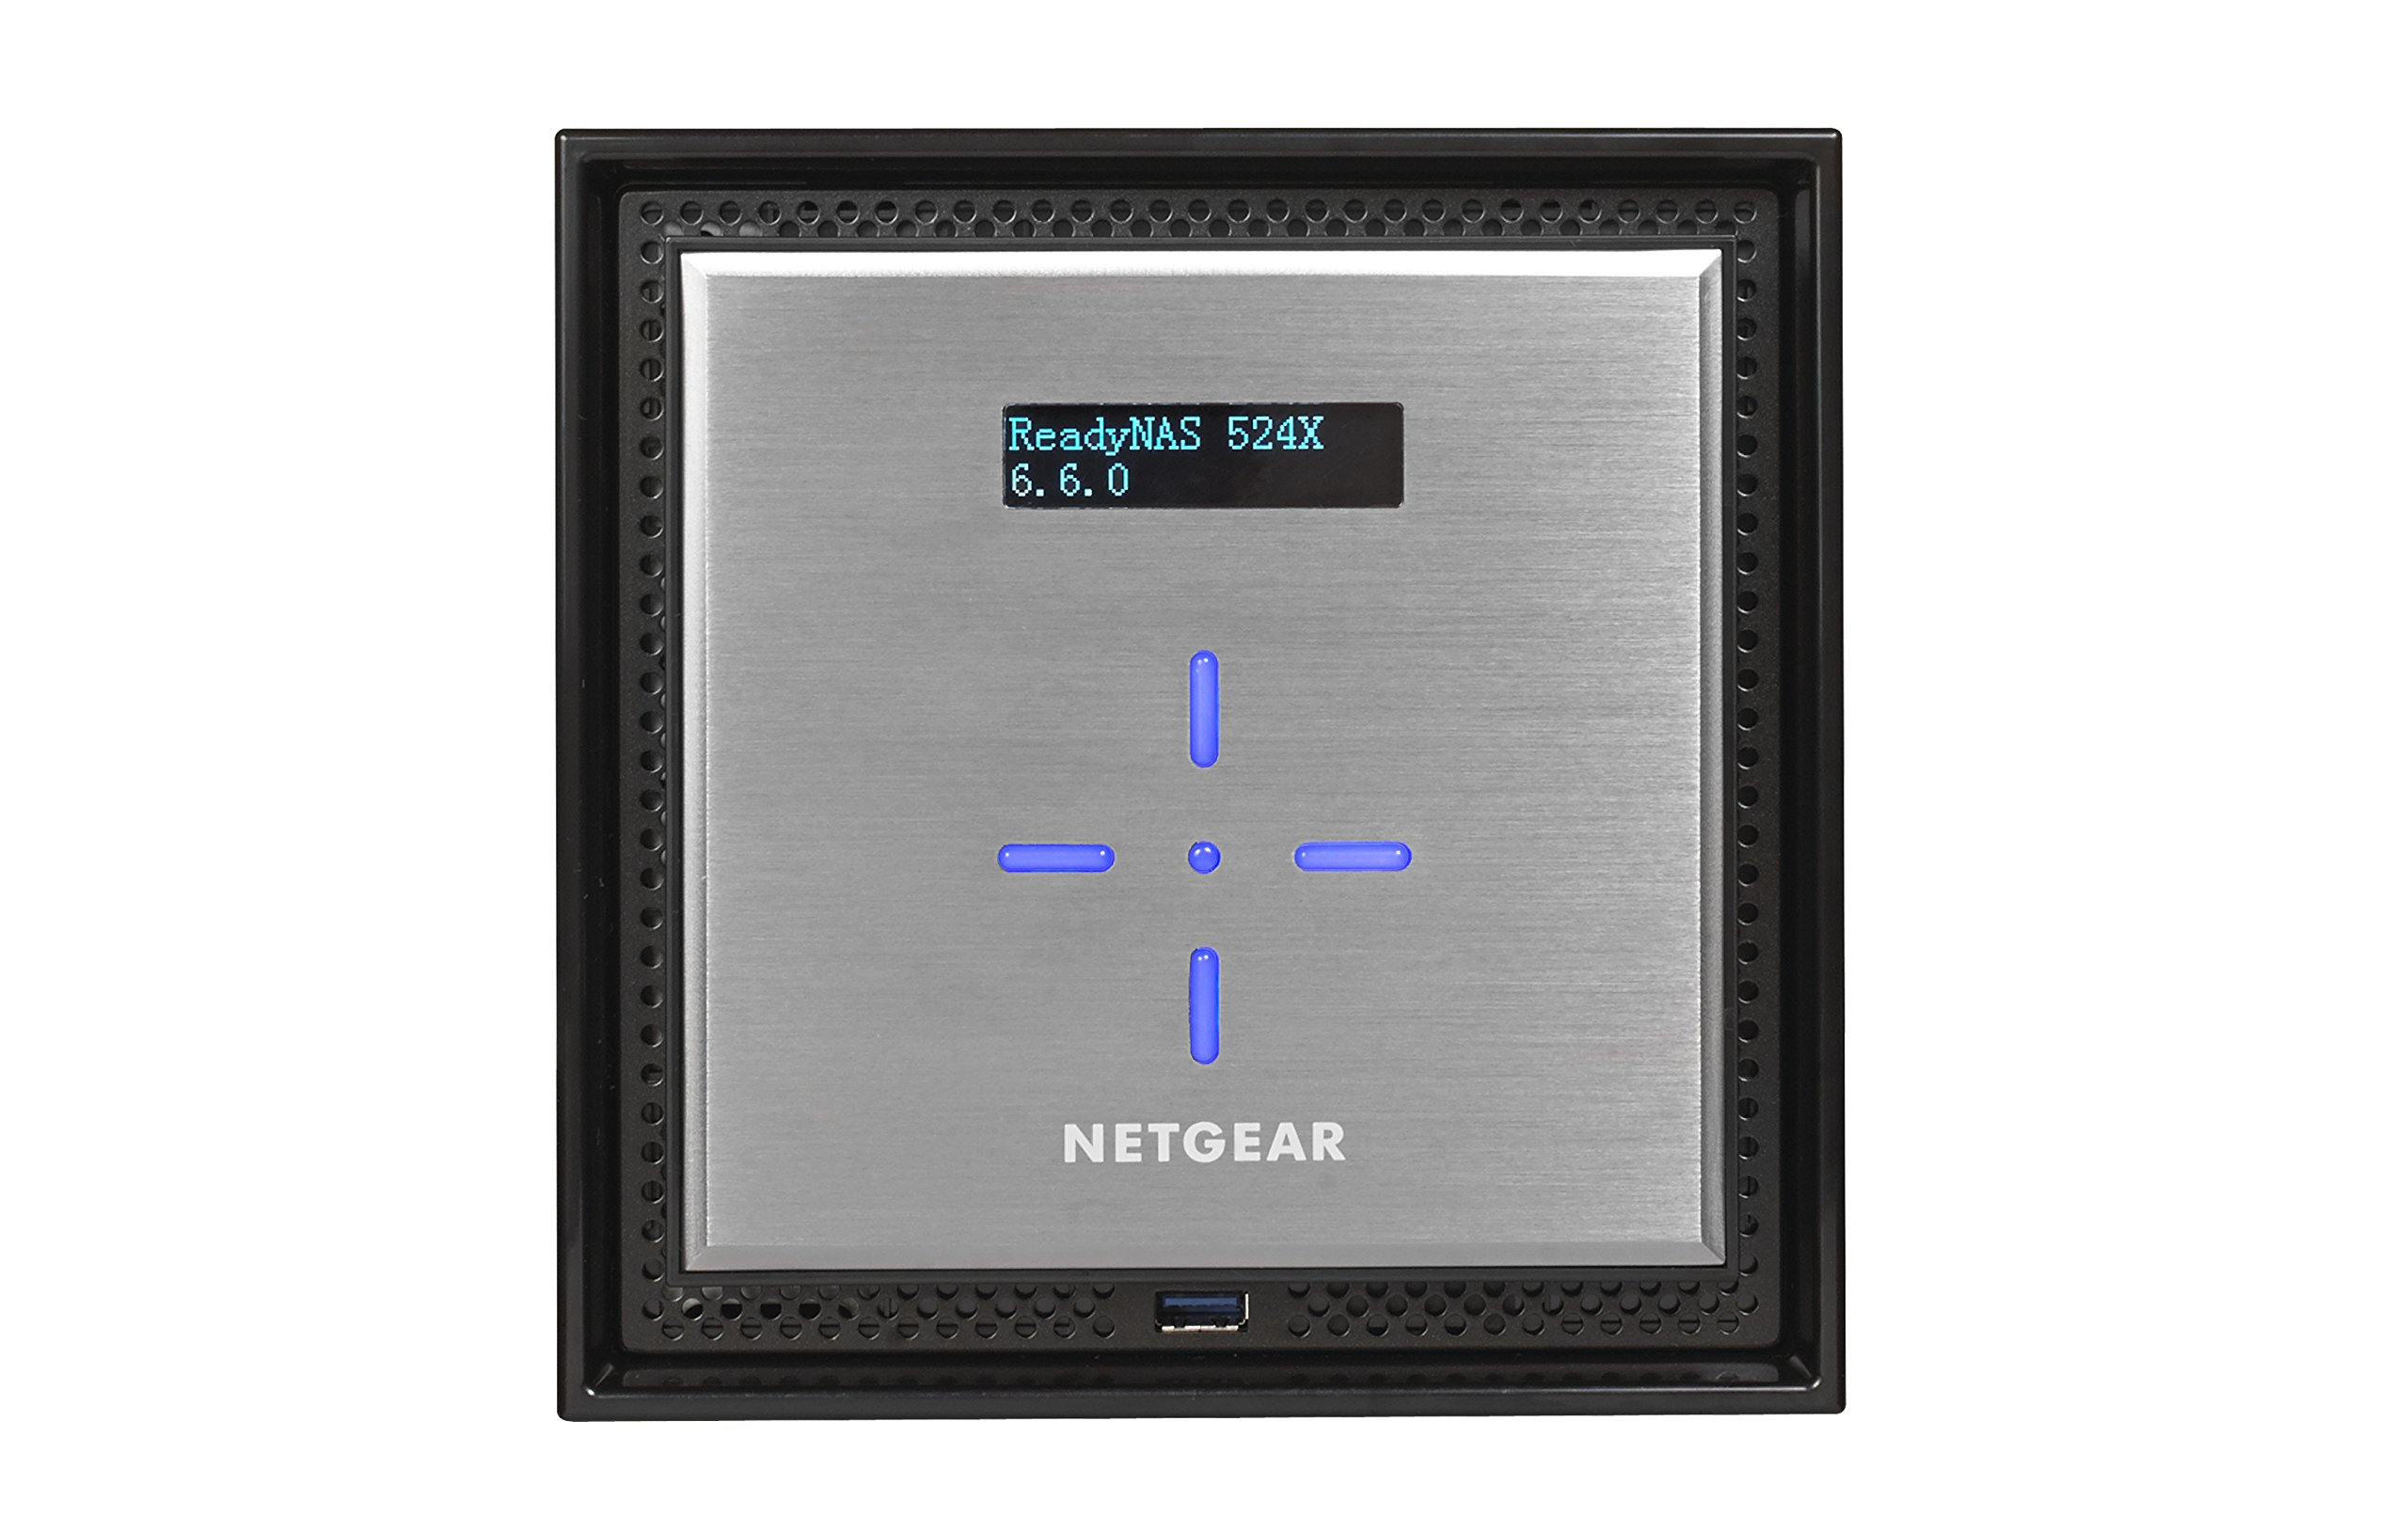 NETGEAR ReadyNAS RN524X00 4 Bay Diskless Premium Performance NAS, 40TB Capacity Network Attached Storage, Intel 2.2GHz Dual Core Processor, 4GB RAM 1 PREMIUM PERFORMANCE - Up to 20 gigabit per second data access, powered by a server processor 10G CONNECTIVITY - Utilize your 10G infrastructure for fast data sharing and backup throughput HIGH-PERFORMANCE - Get 2x faster business application processing with the latest 64-bit technology